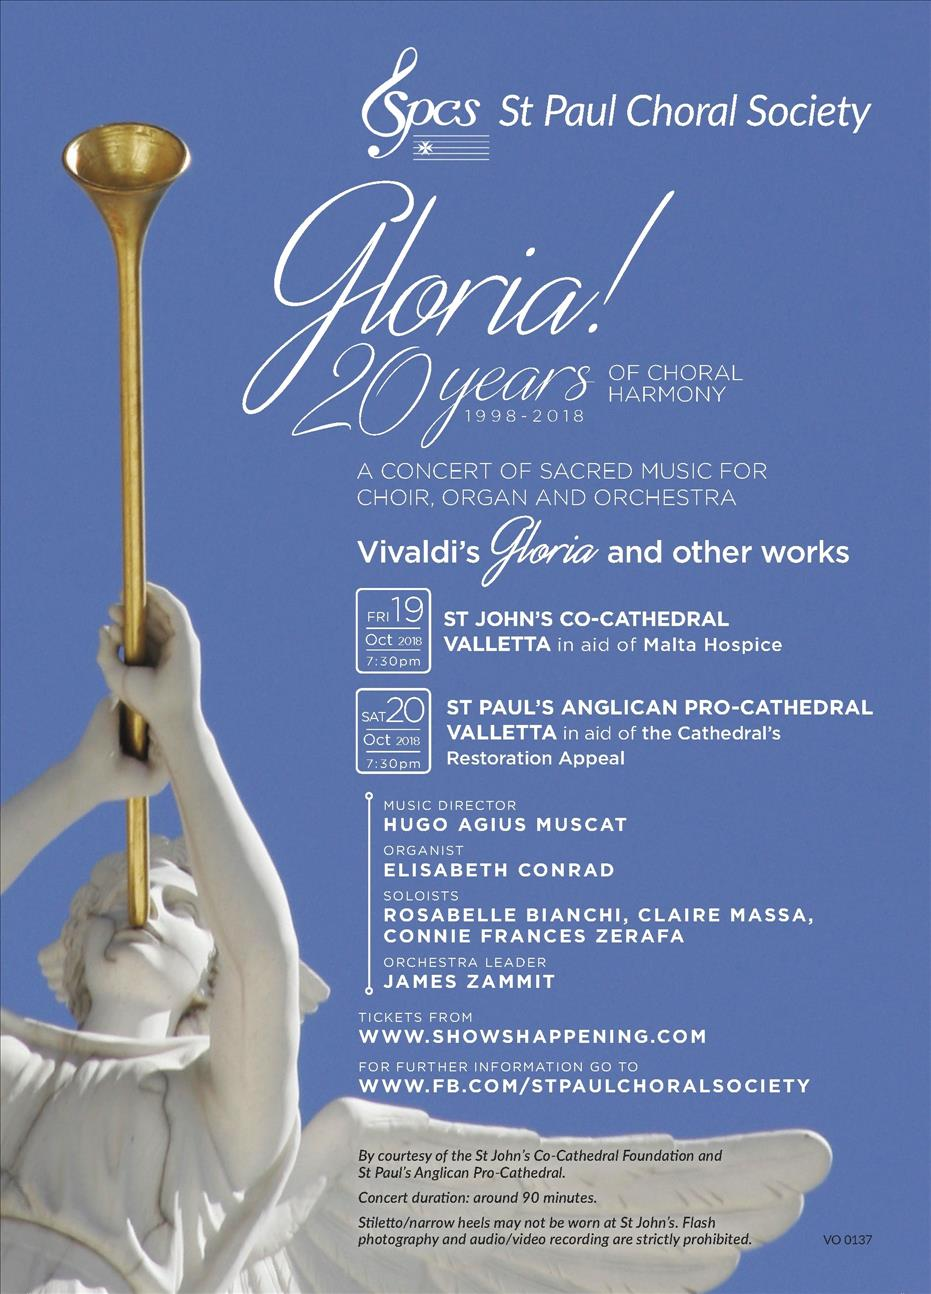 Gloria! 20 Years of Choral Harmony - Vivaldi's Gloria and other sacred works (SPCS 20th Anniversary Concert)